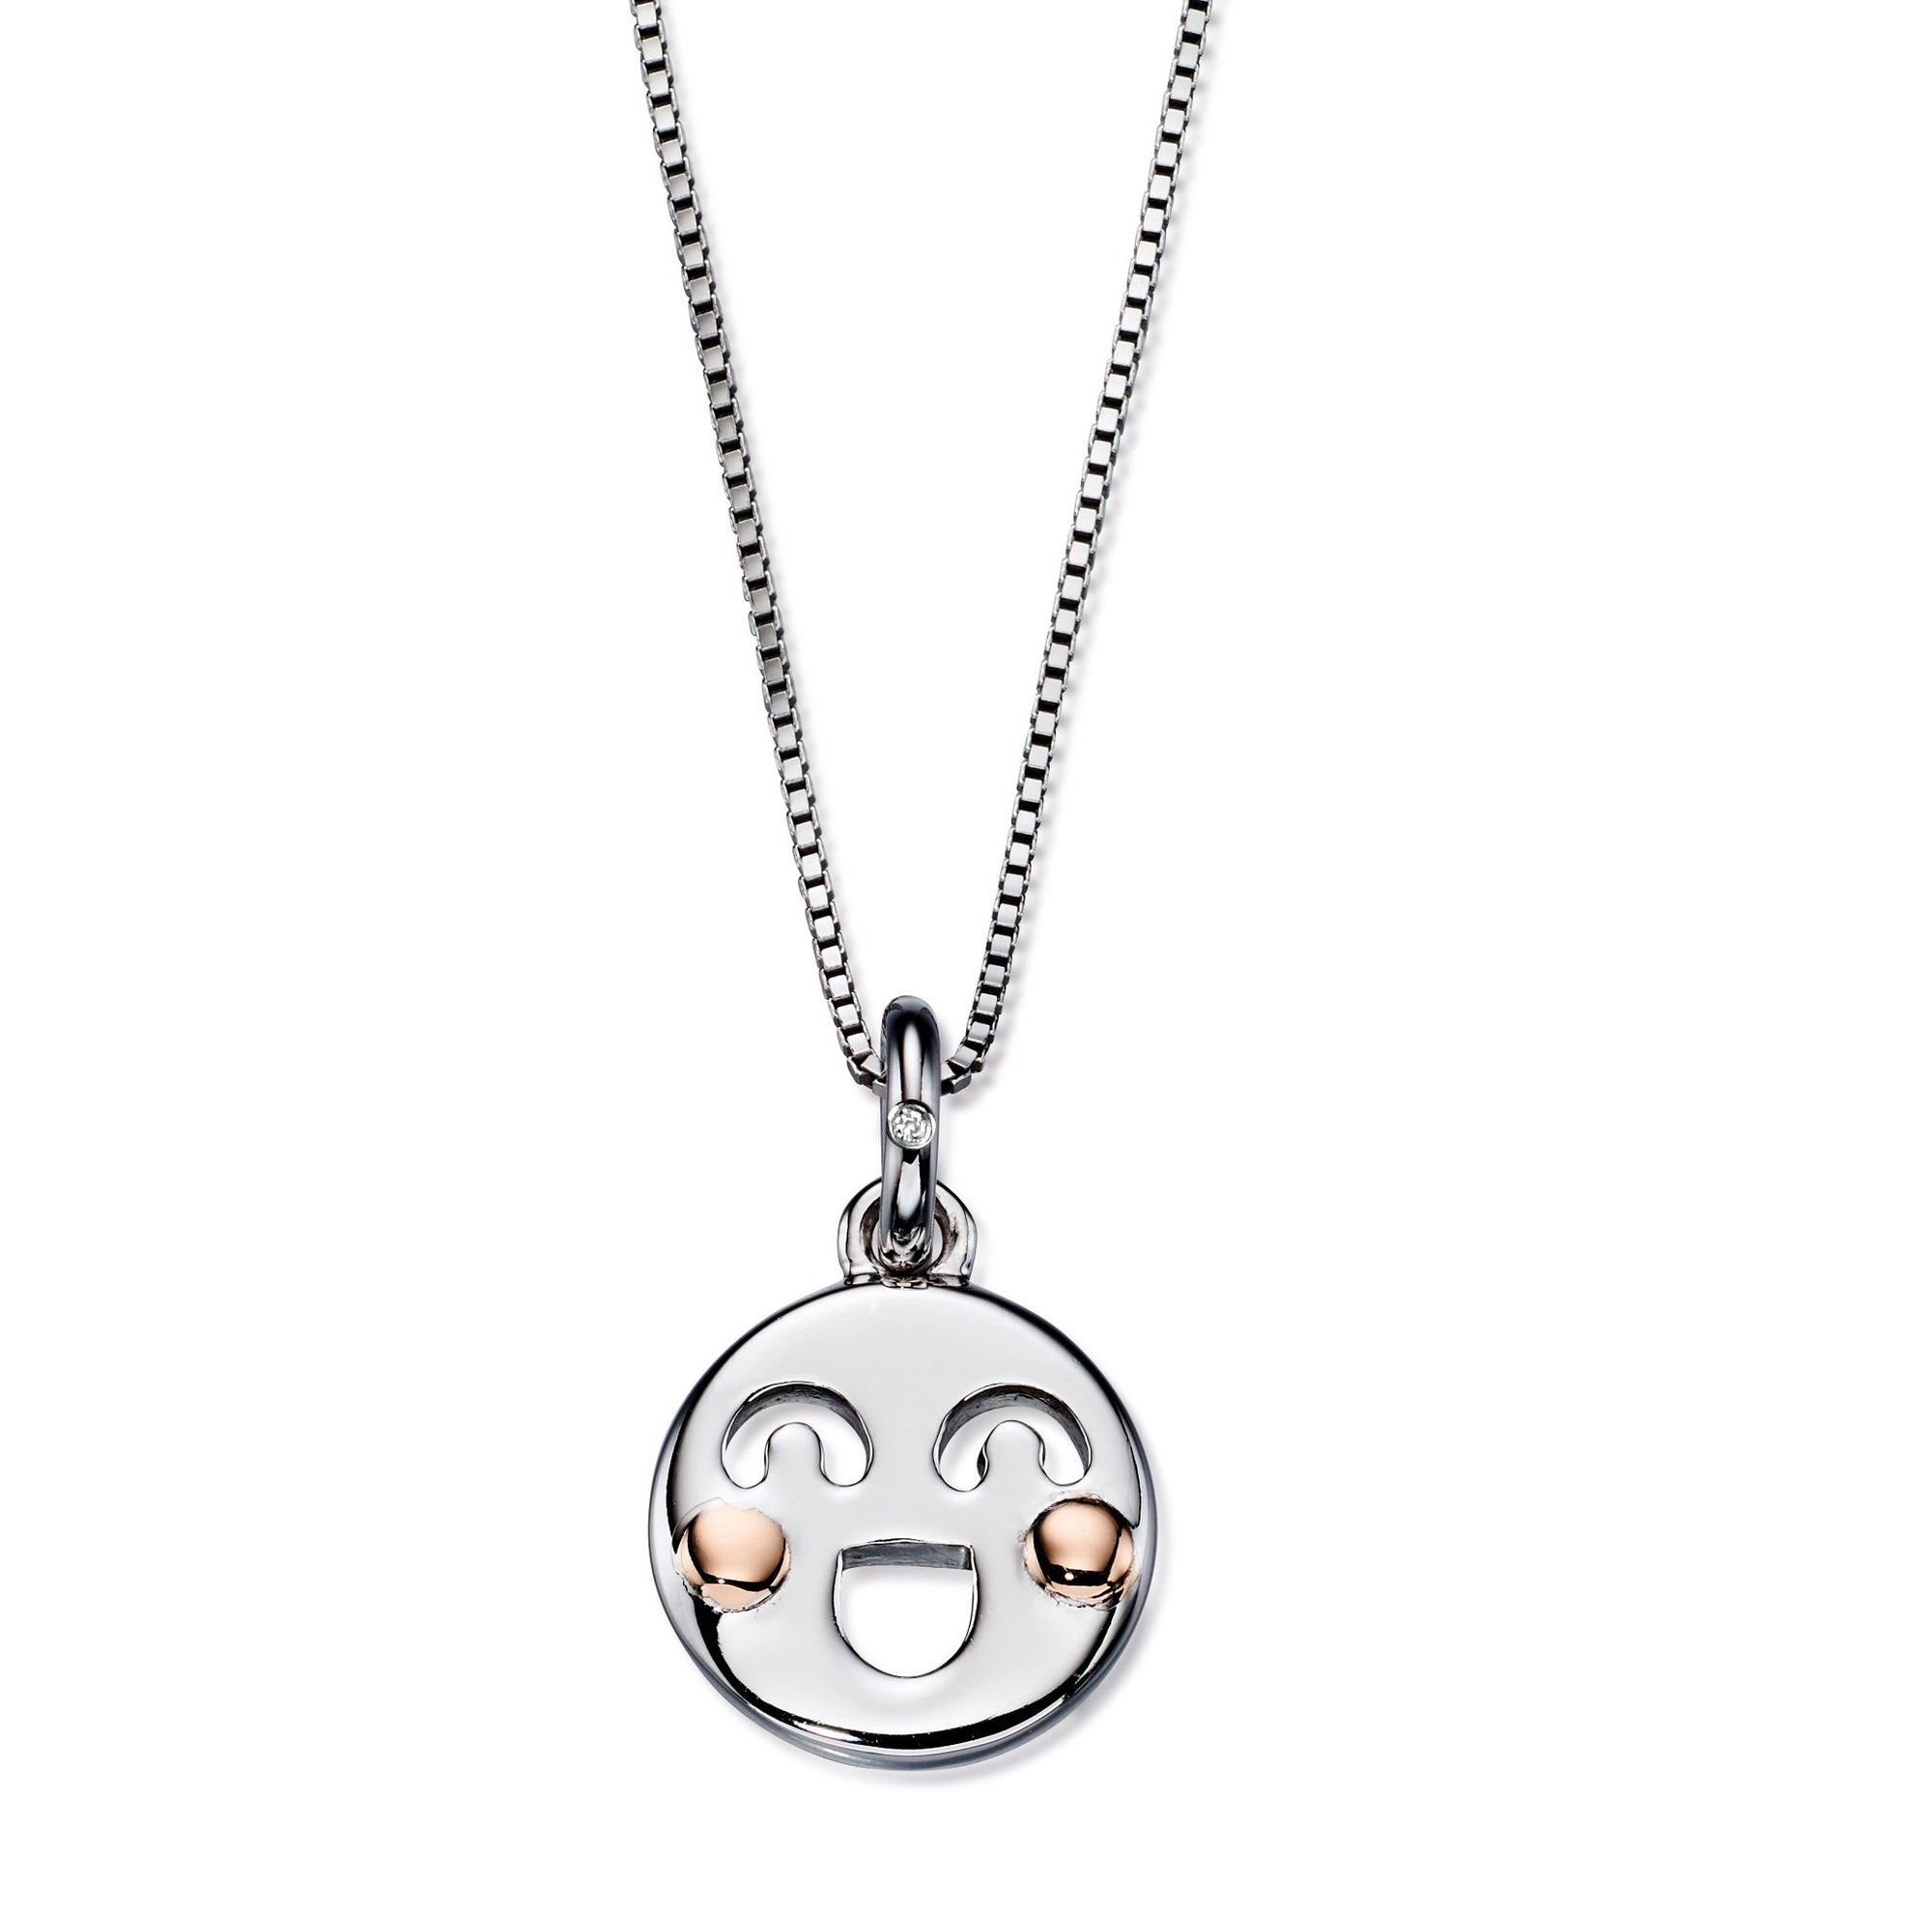 D for Diamond Rose and White Emoji Necklace